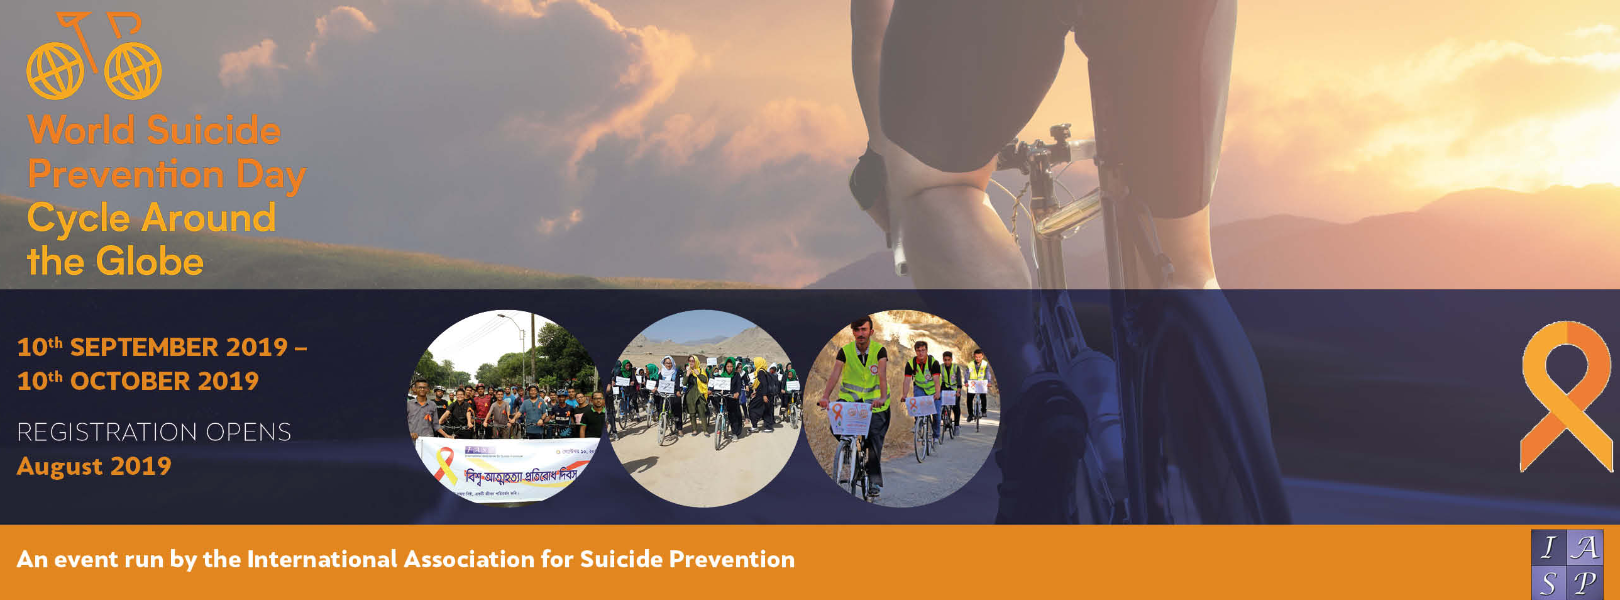 International Association for Suicide Prevention